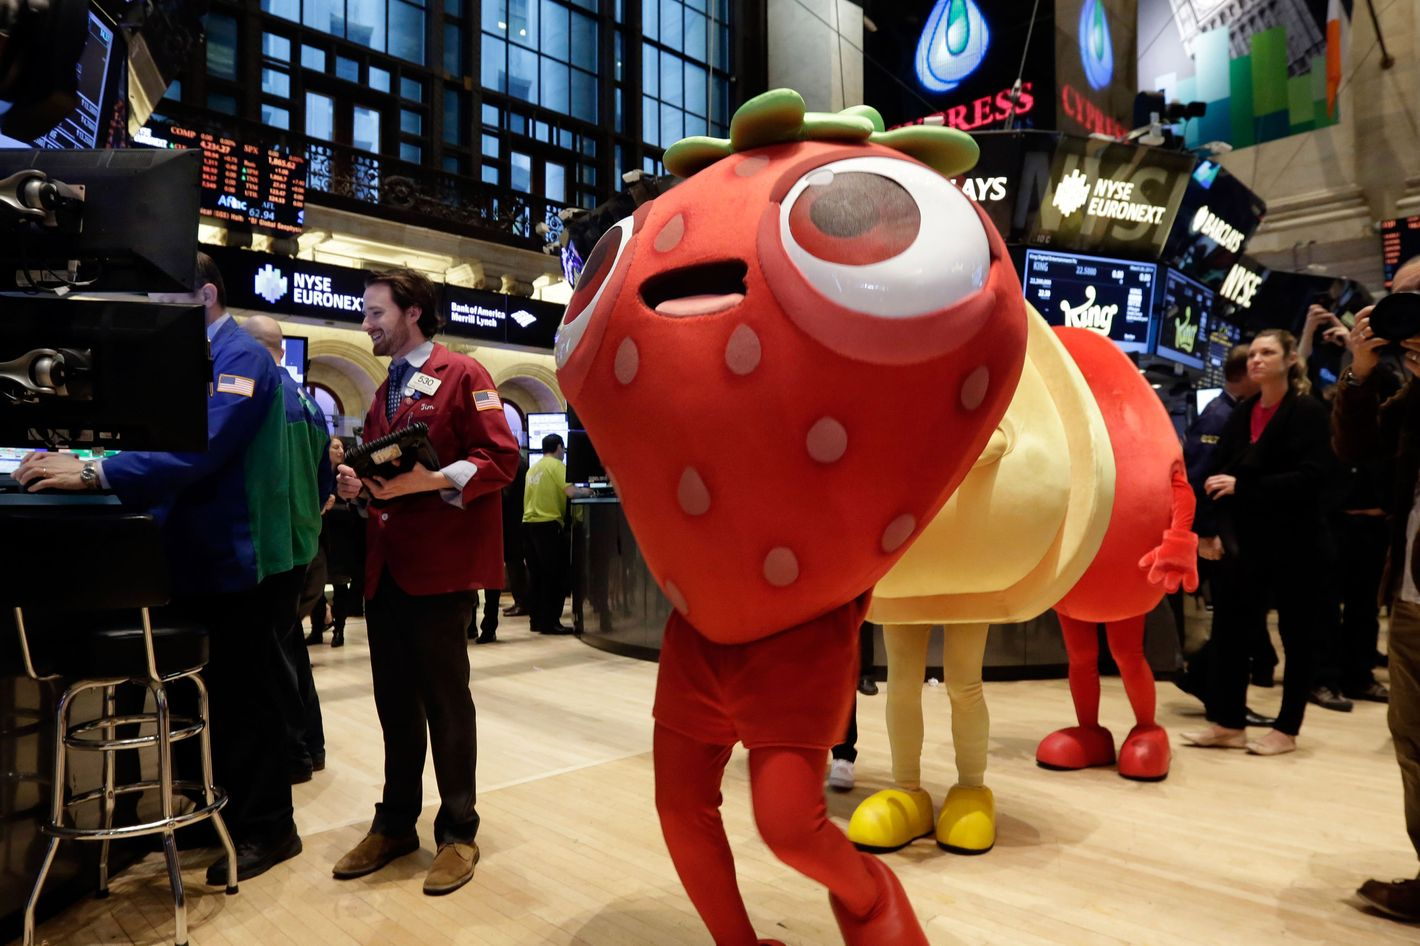 "Characters of the King Digital Entertainment game Candy Crush Saga walk the trading floor of the New York Stock Exchange, before the company's IPO, Wednesday, March 26, 2014.  The stock market opened higher Wednesday after a strong report on American manufacturing. The maker of the hit game ""Candy Crush Saga"" flopped in its market debut."